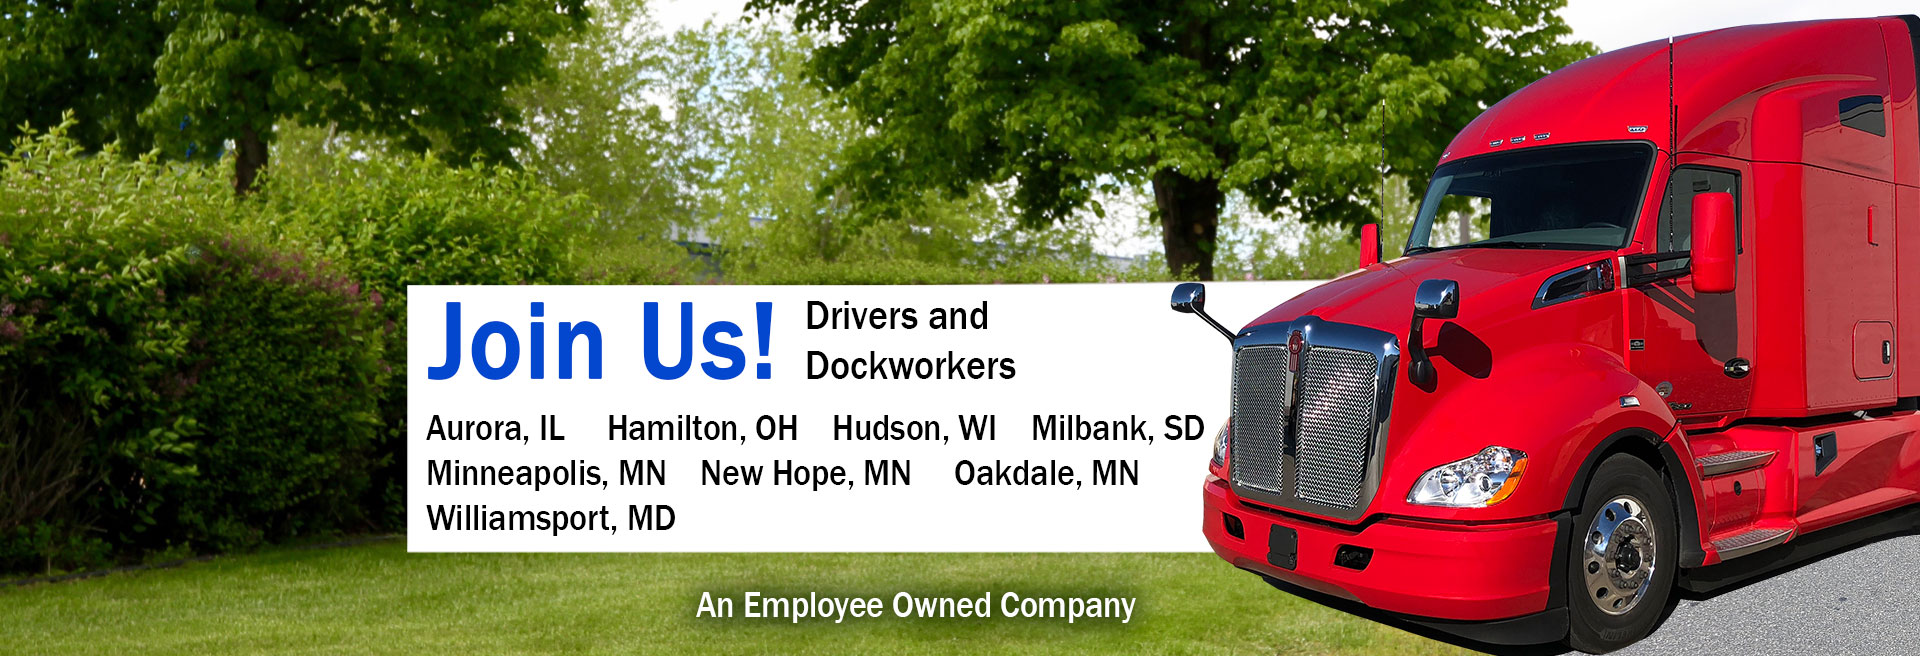 DLI | Dedicated Logistics, Inc  - An Employee Owned Company